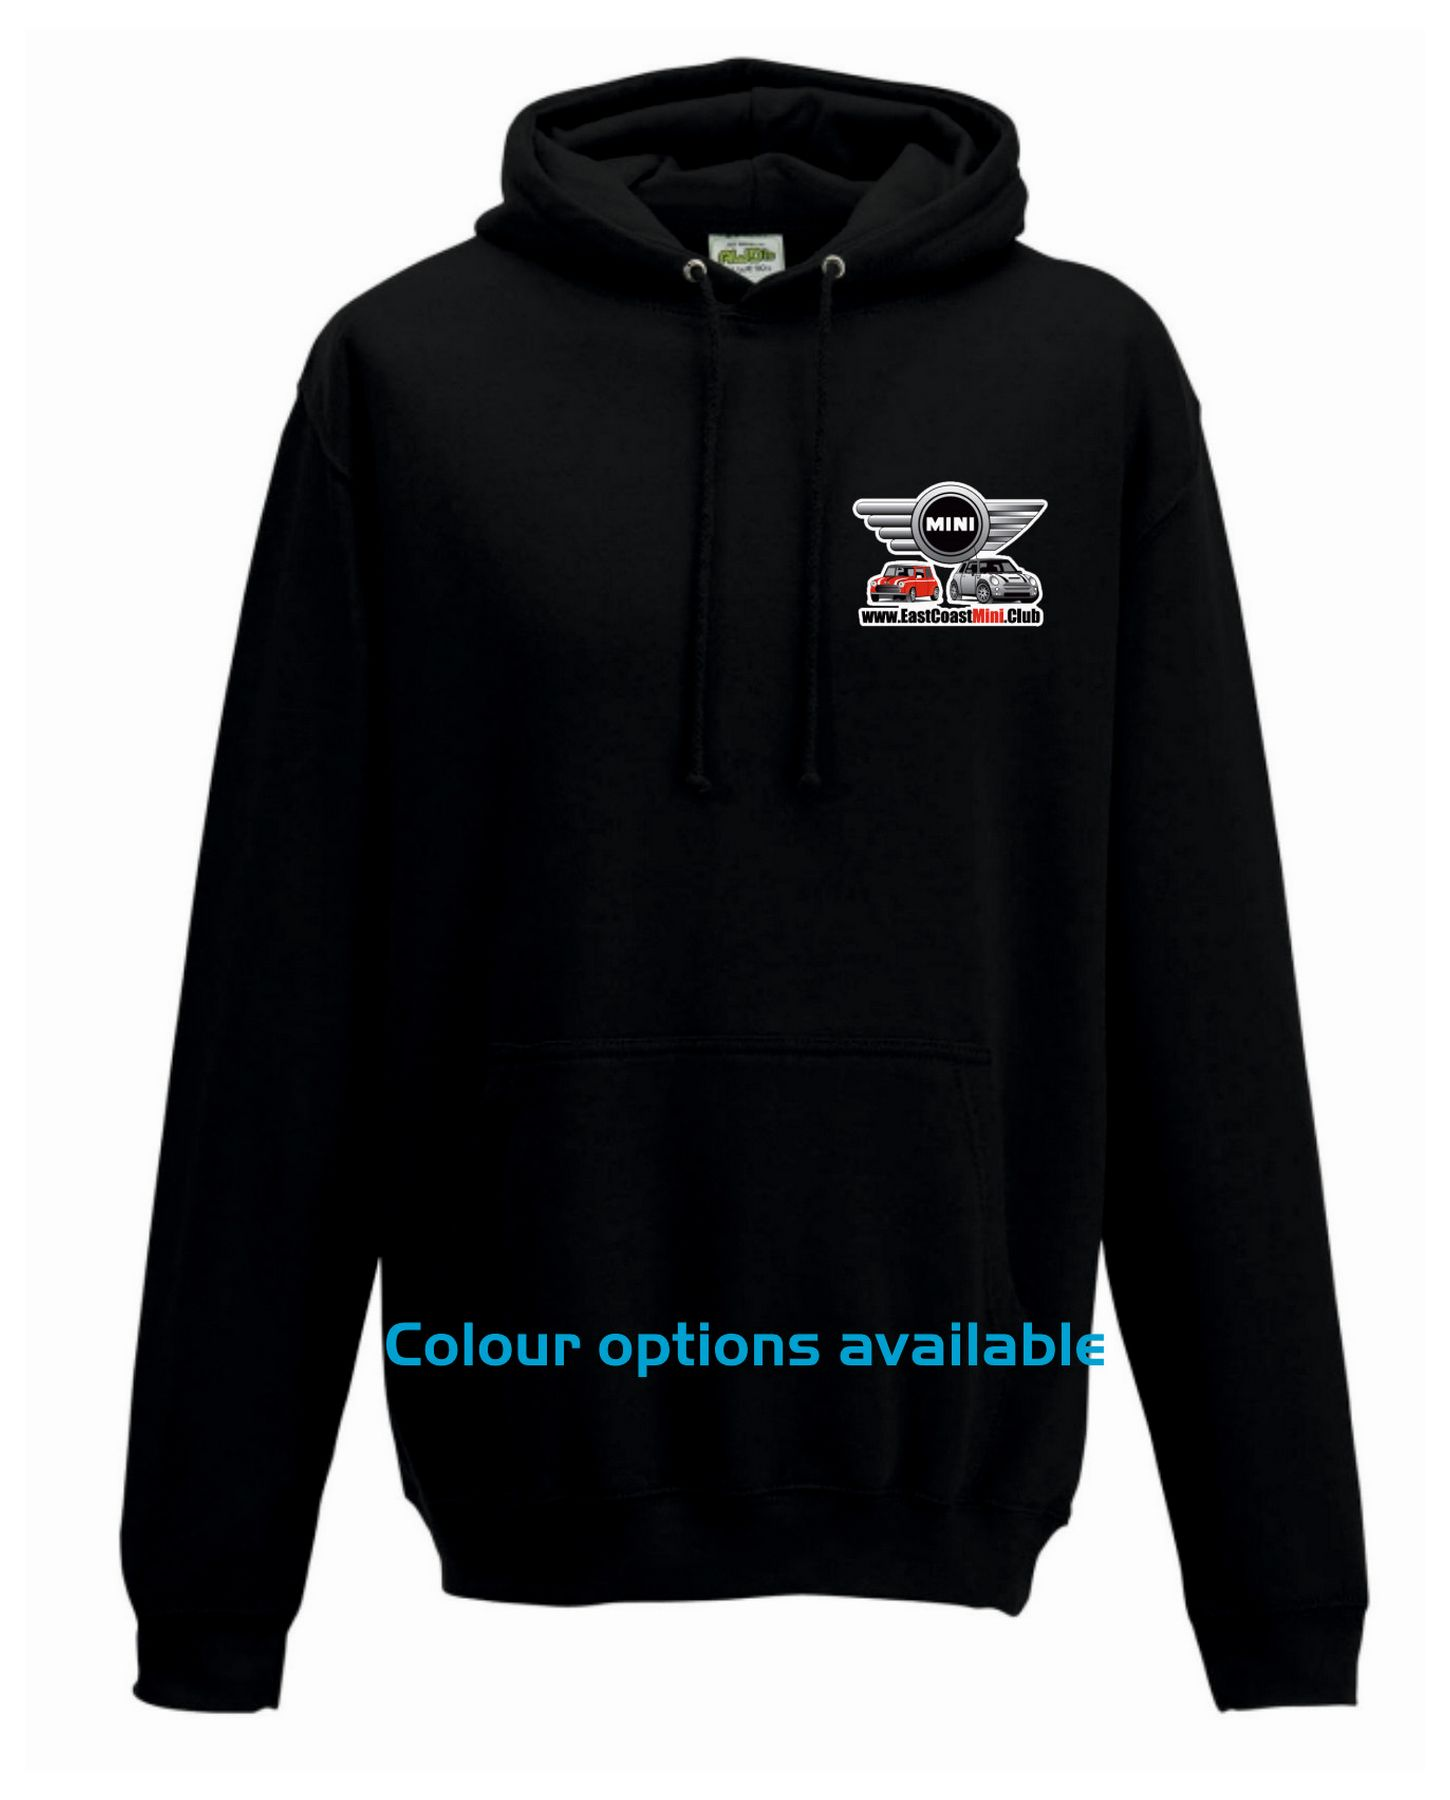 East Coast Mini Club – Hoodie Adults